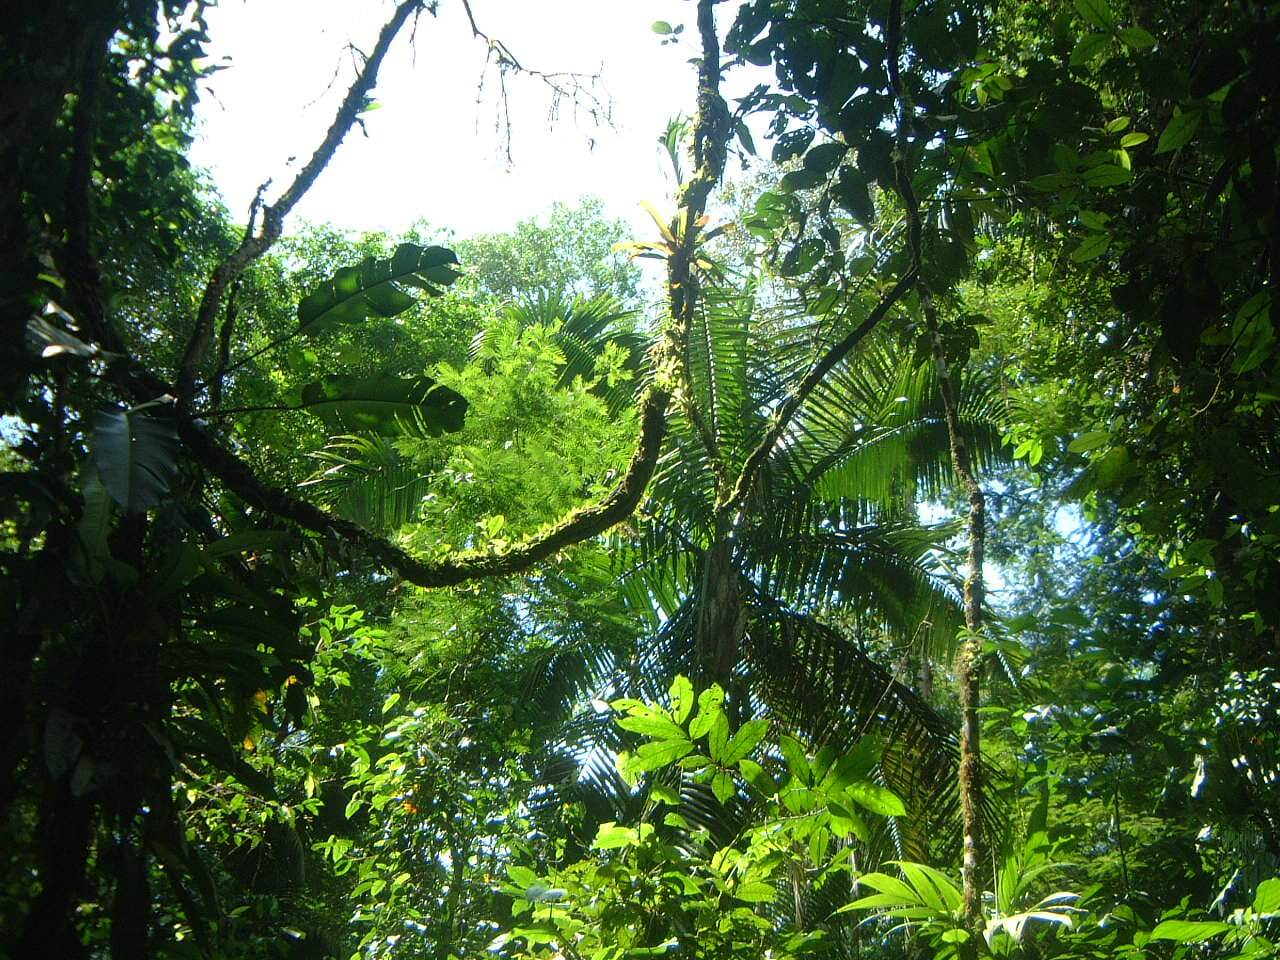 La Selva rainforest in Costa Rica.